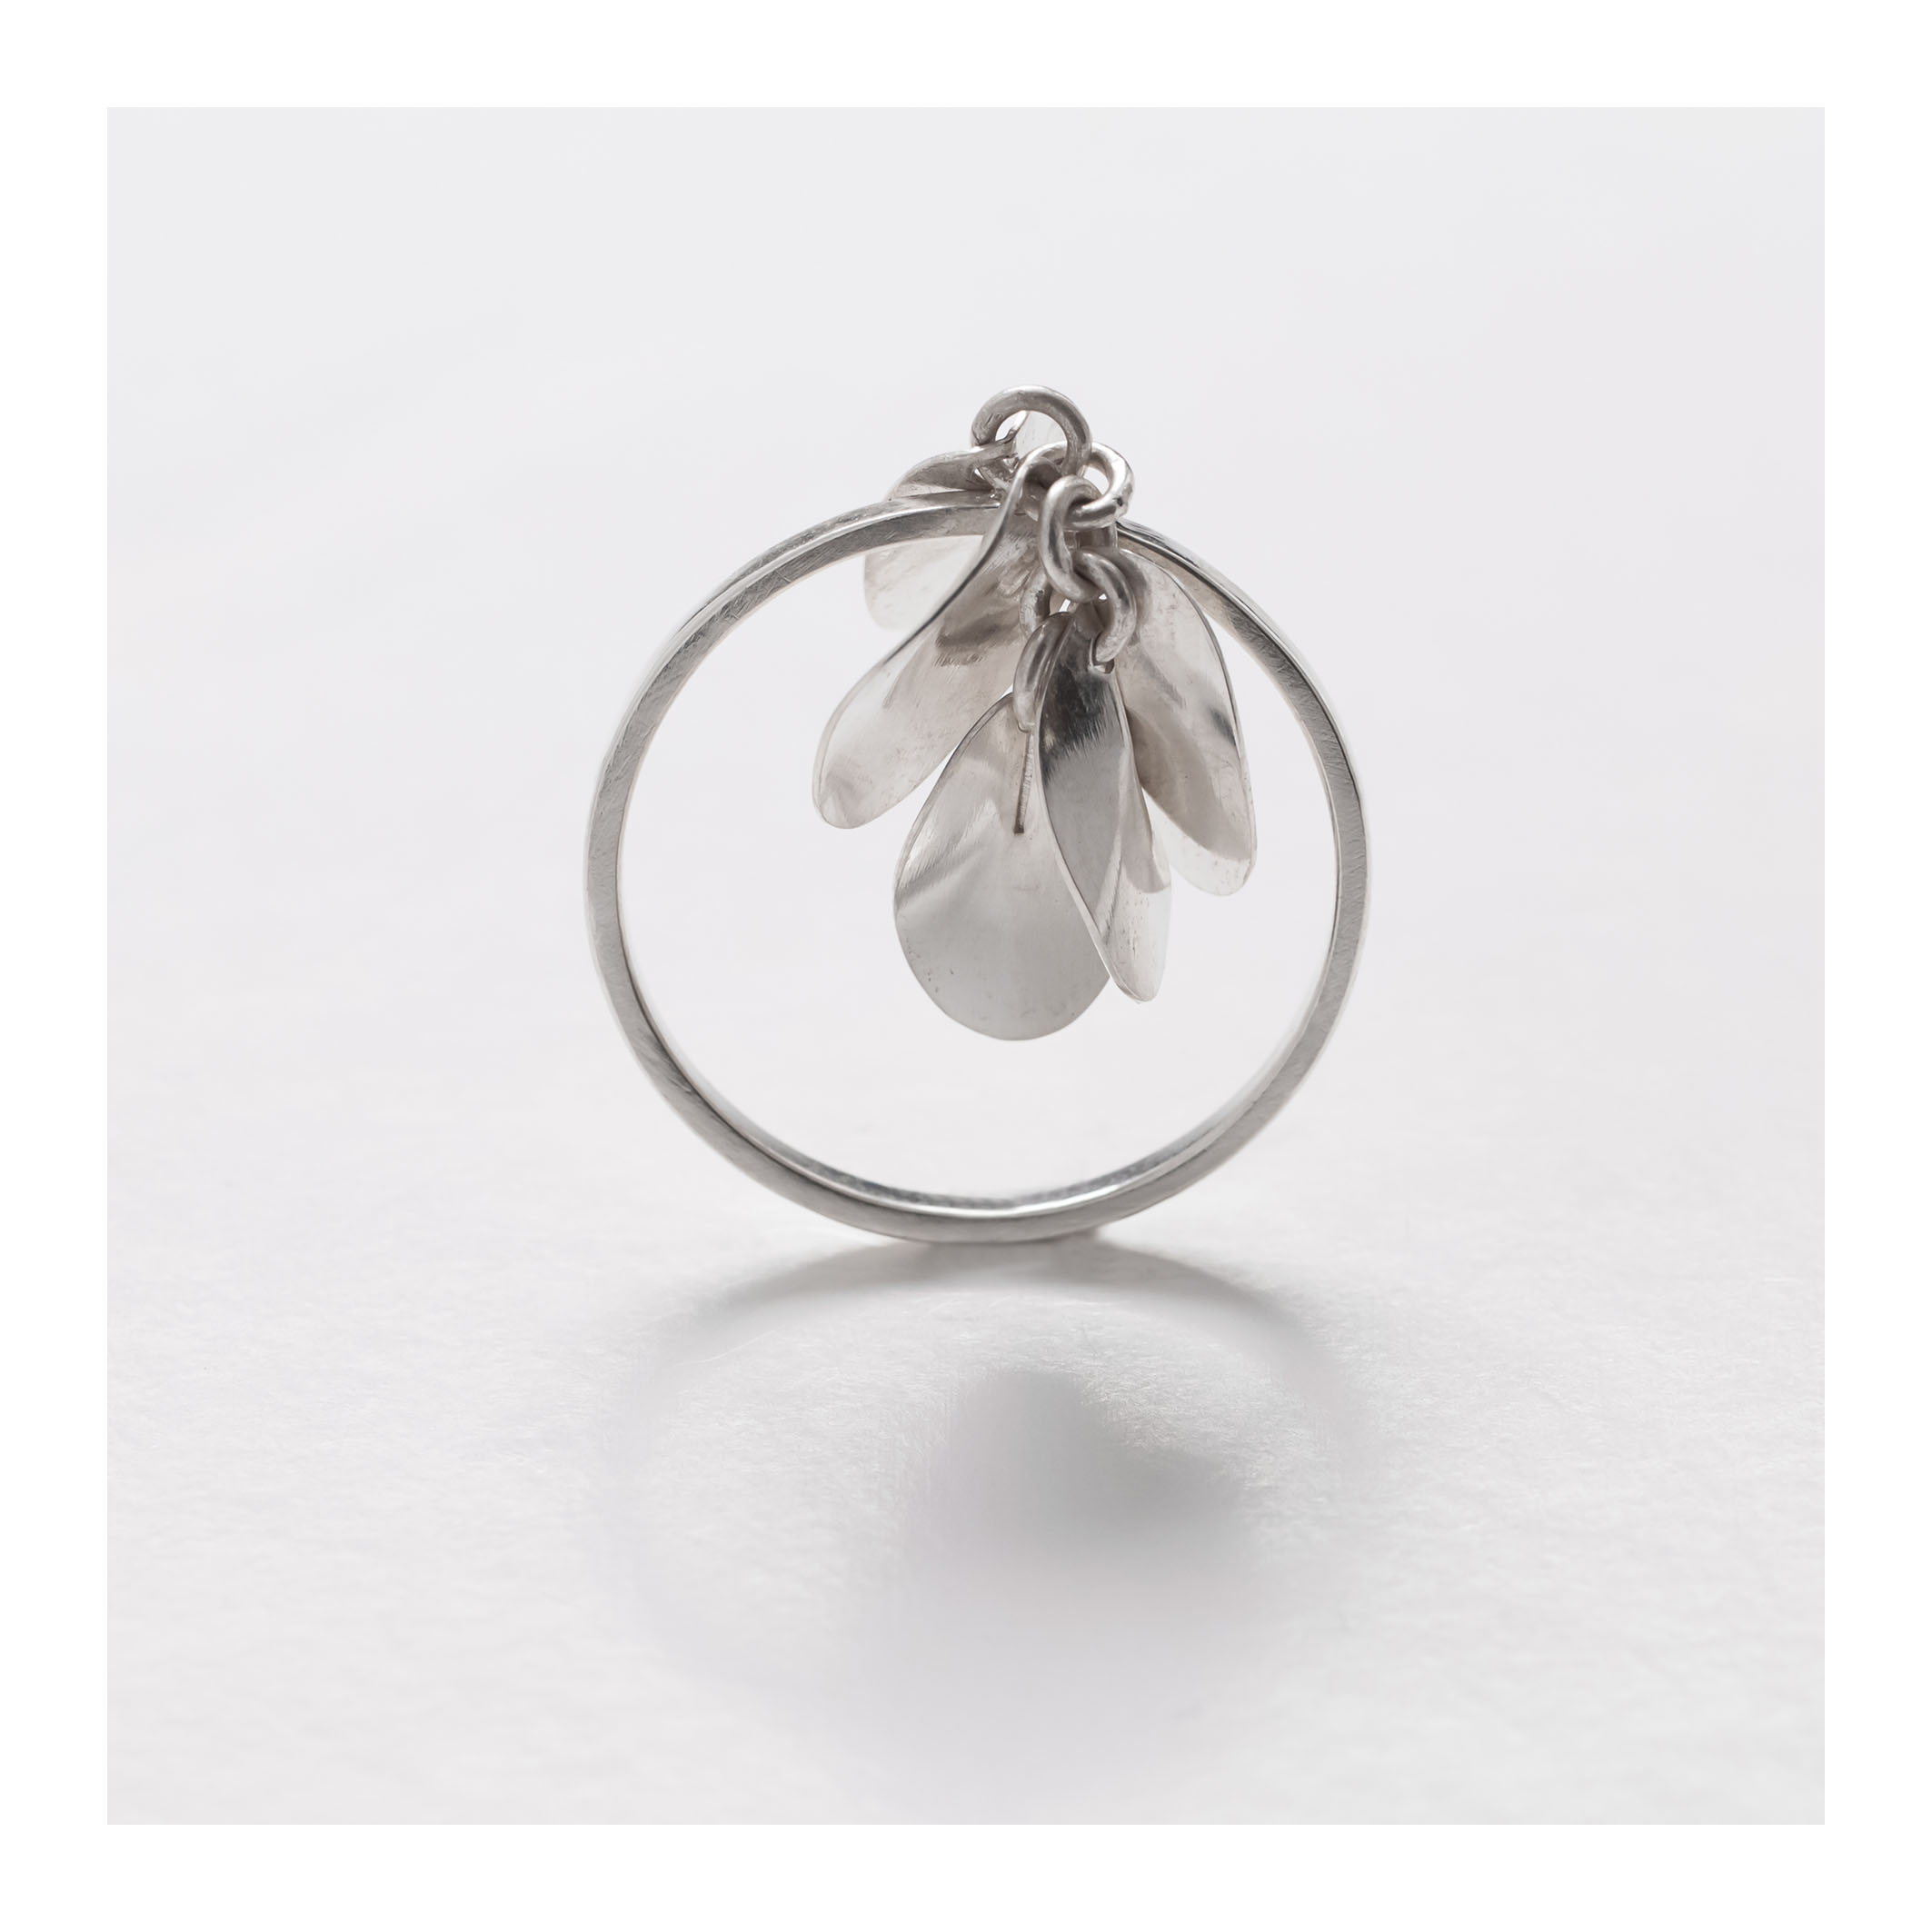 Leaf Ring [Image: Courtesy of Ashley Heather / Design Indaba]